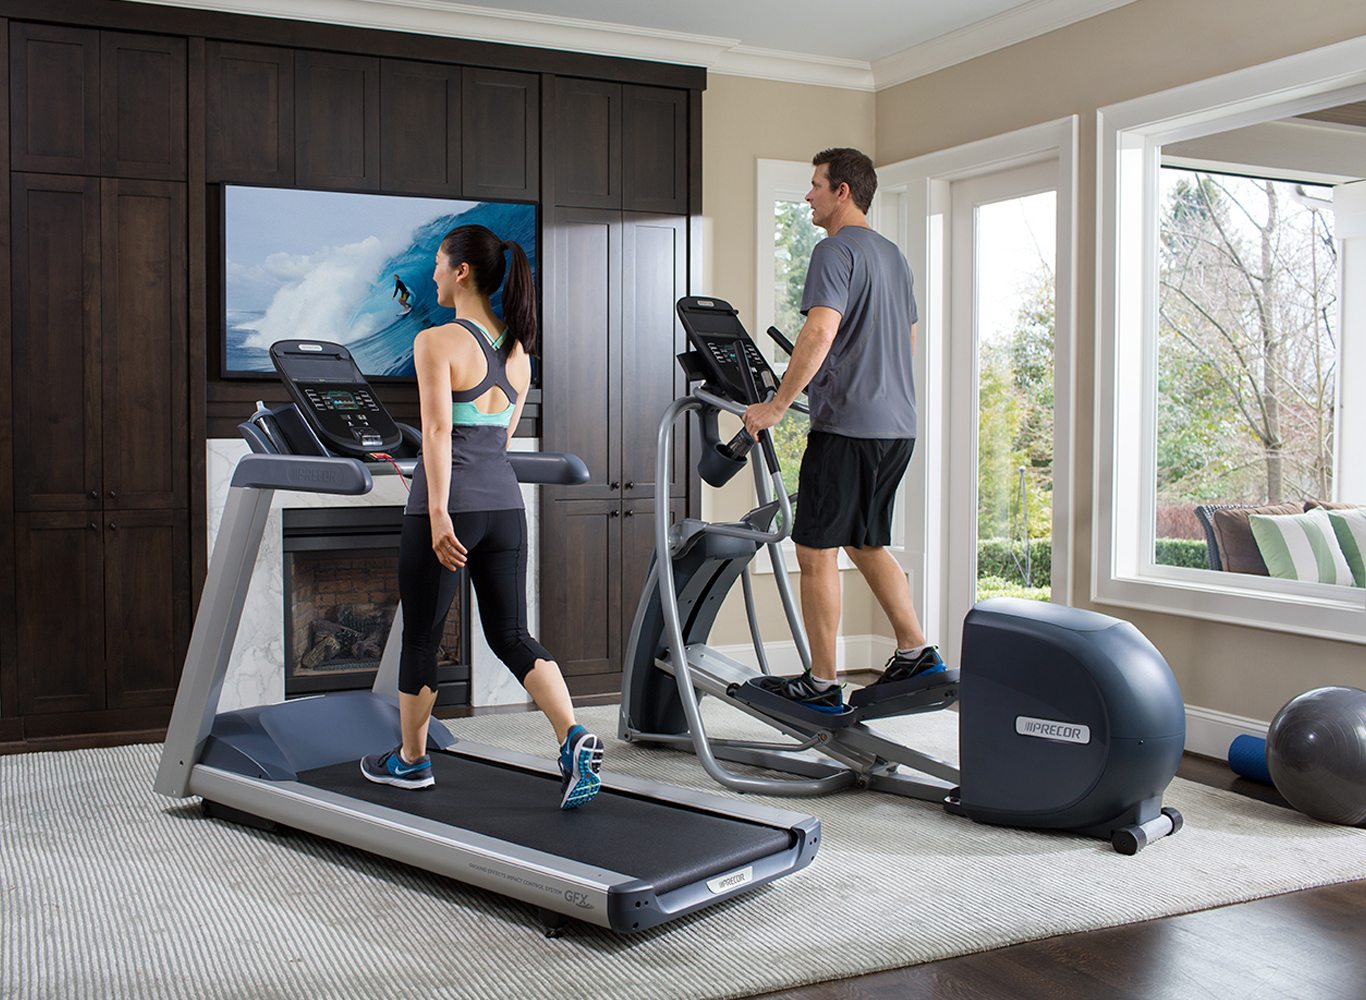 Exercise equipment buy home gym fitness equipment fitness expo